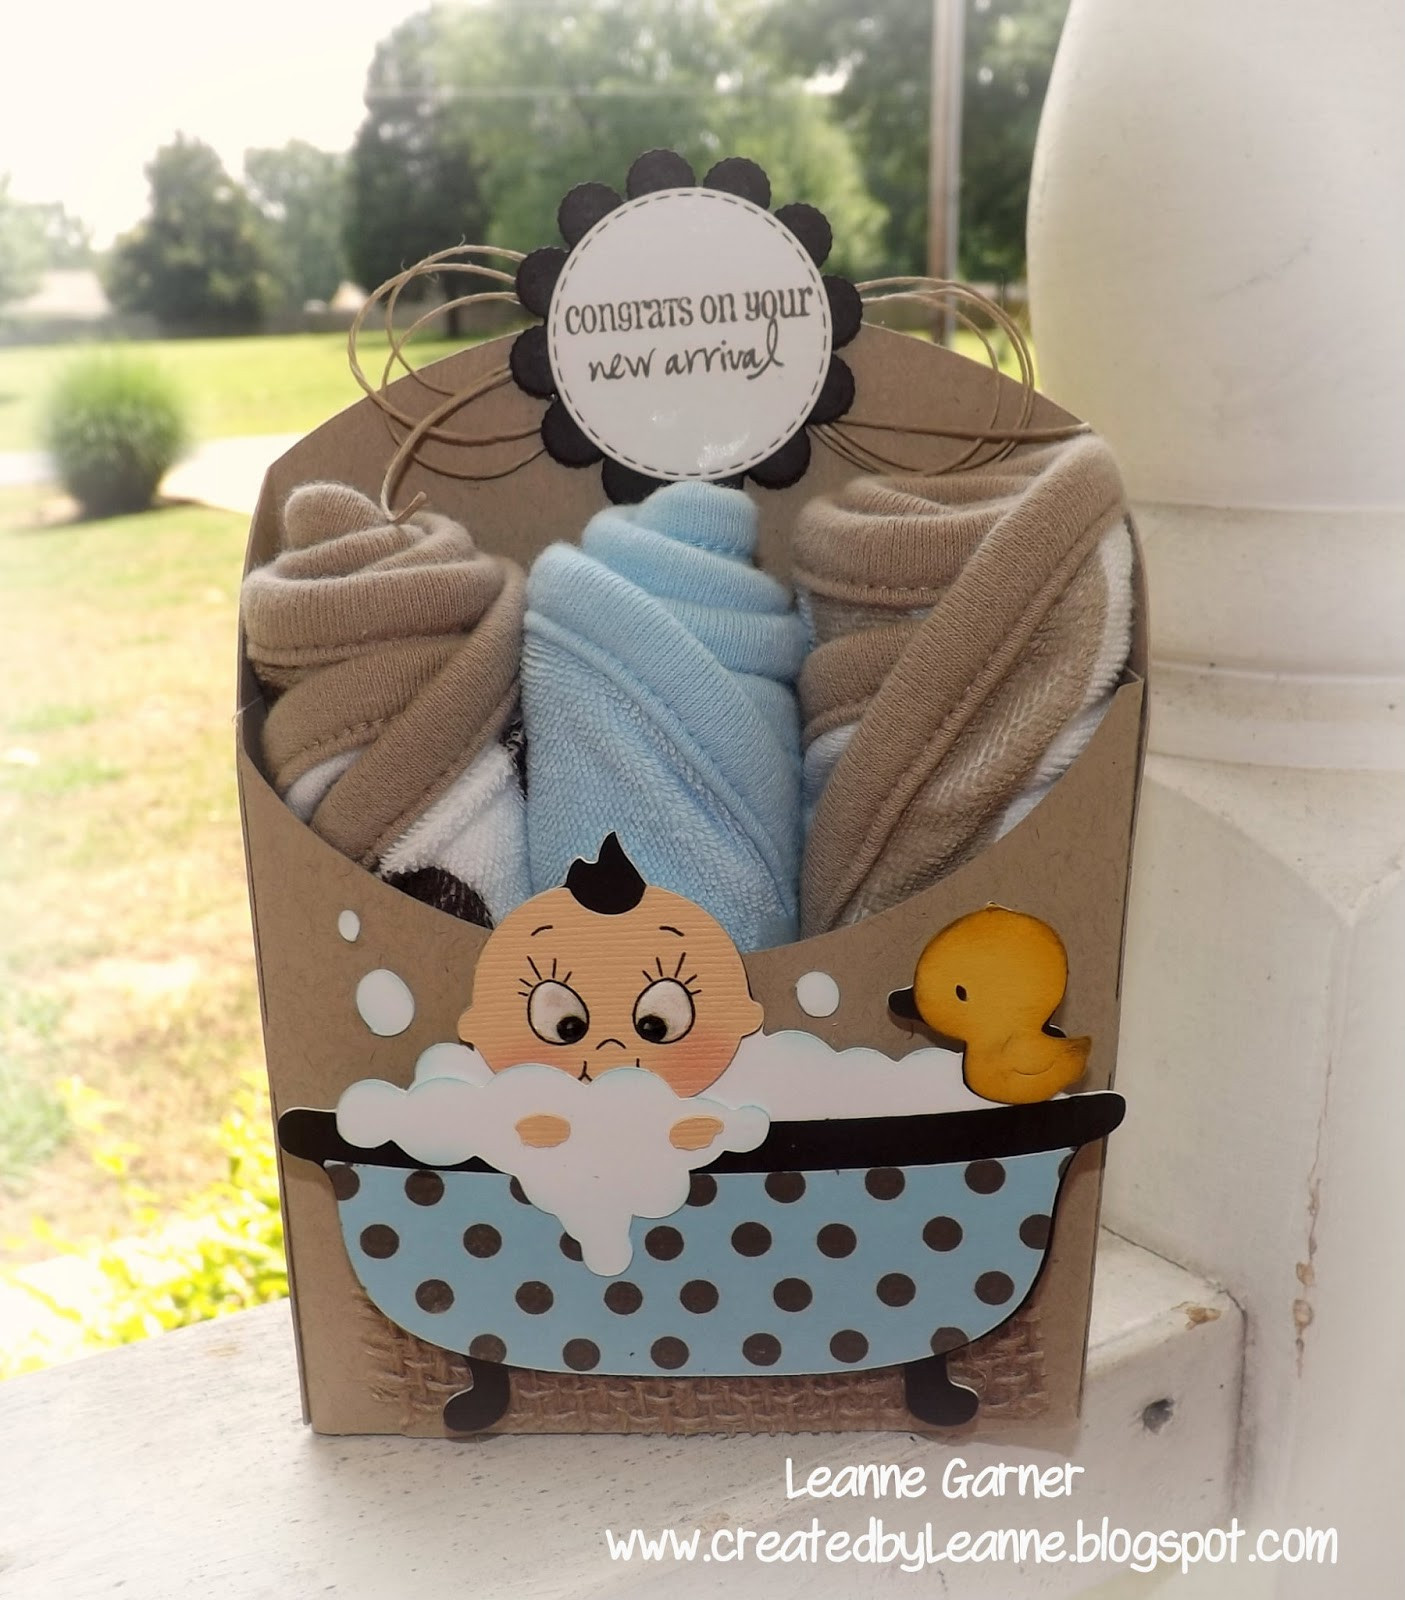 Best ideas about Cute Baby Shower Gift Ideas . Save or Pin Obsessed with Scrapbooking See the Cutest Baby Shower Now.